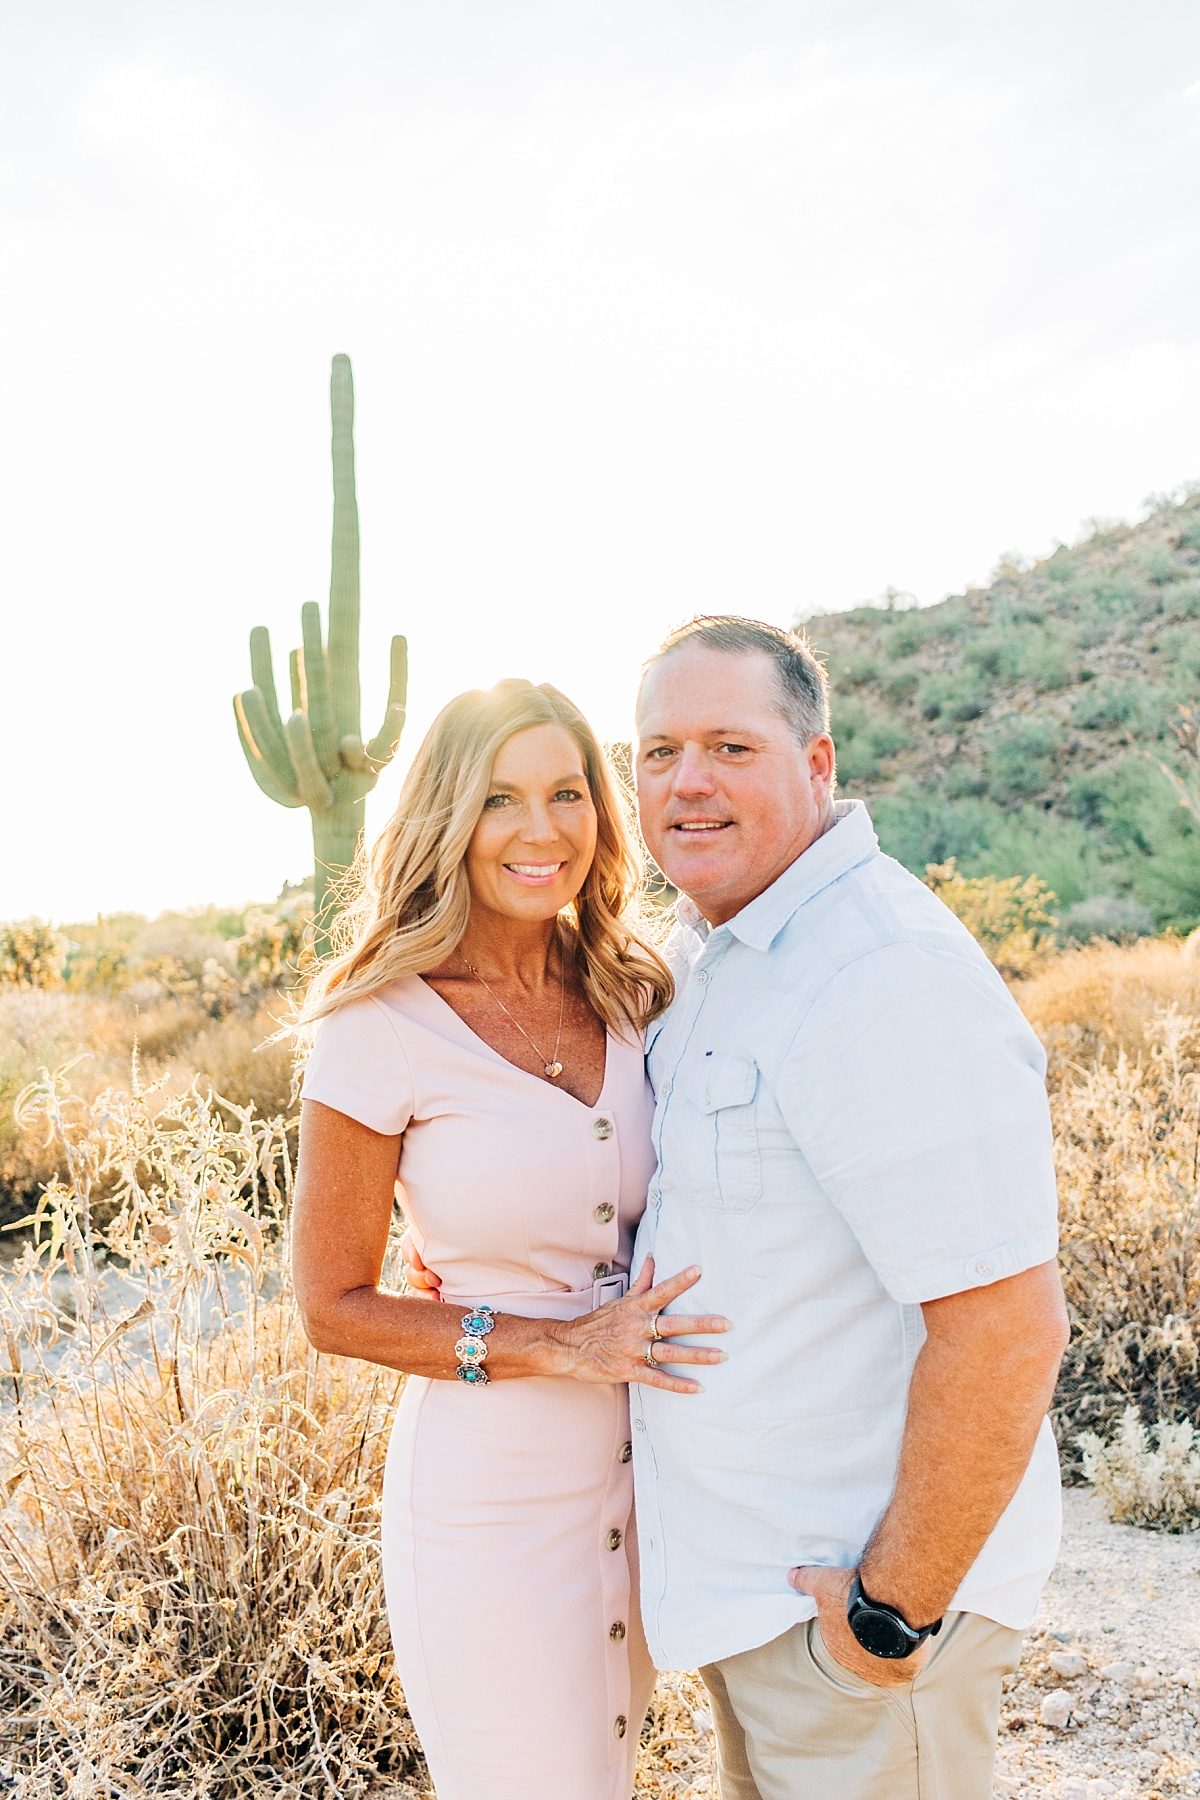 SCOTTSDALE EXTENDED FAMILY PHOTOGRAPHER   WHAT TO EXPECT